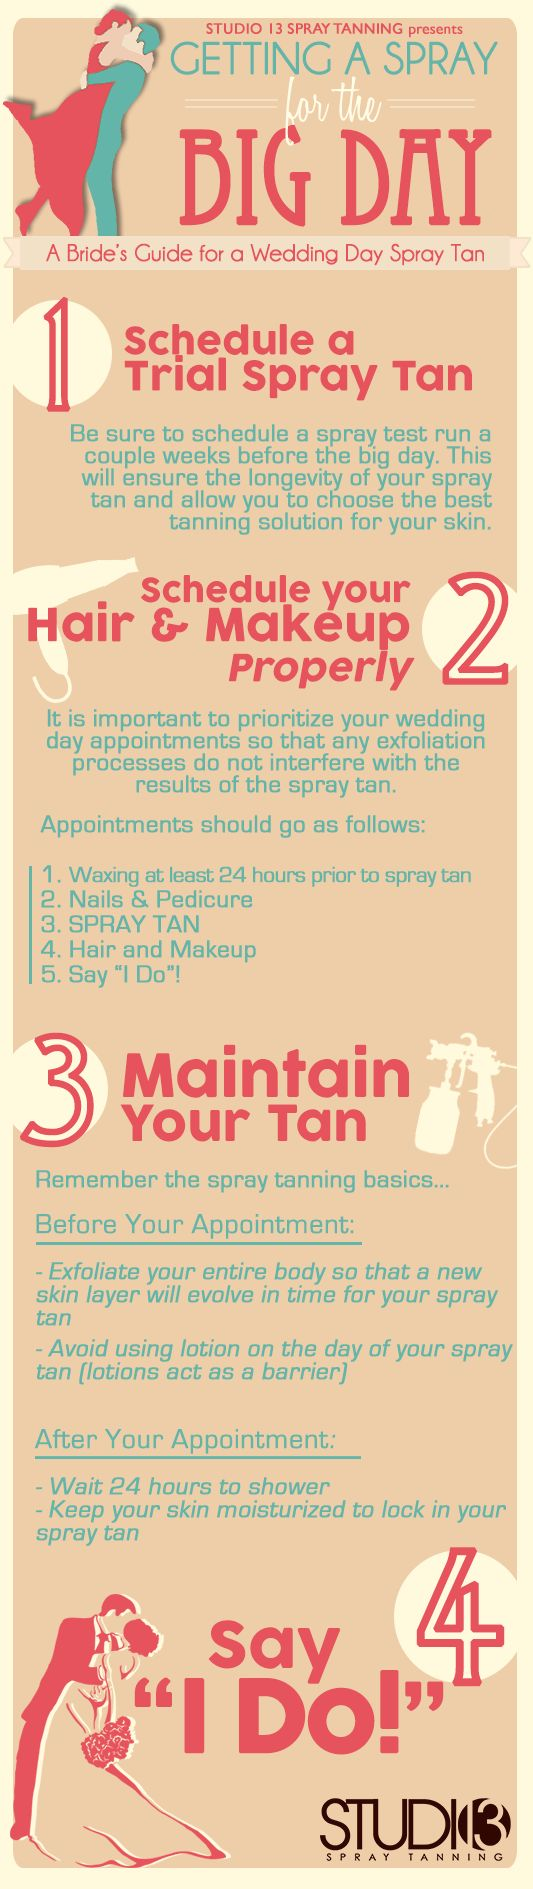 All you need to know for your wedding day spray tan, or just spray tanning in general. For more spray tanning tips visit http://www.Studio13SprayTanning.com